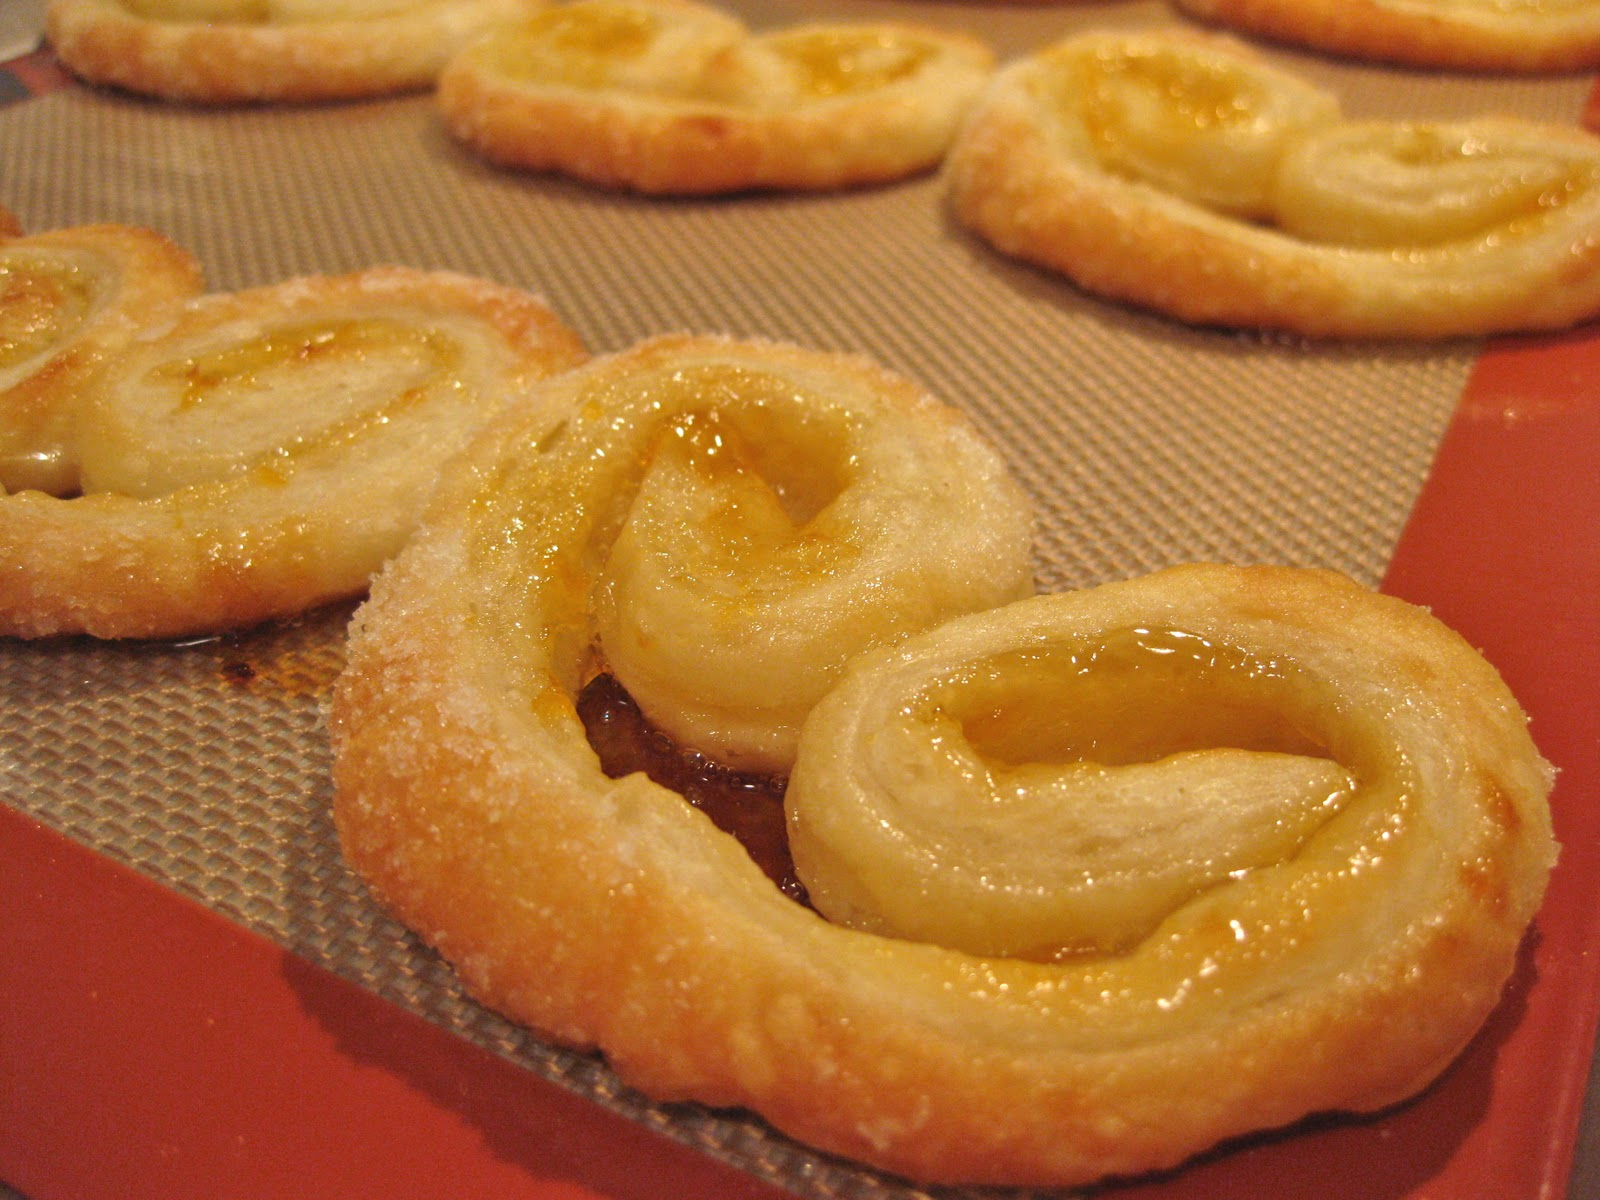 package Dufour puff pastry (or another all-butter pastry, 14 oz)